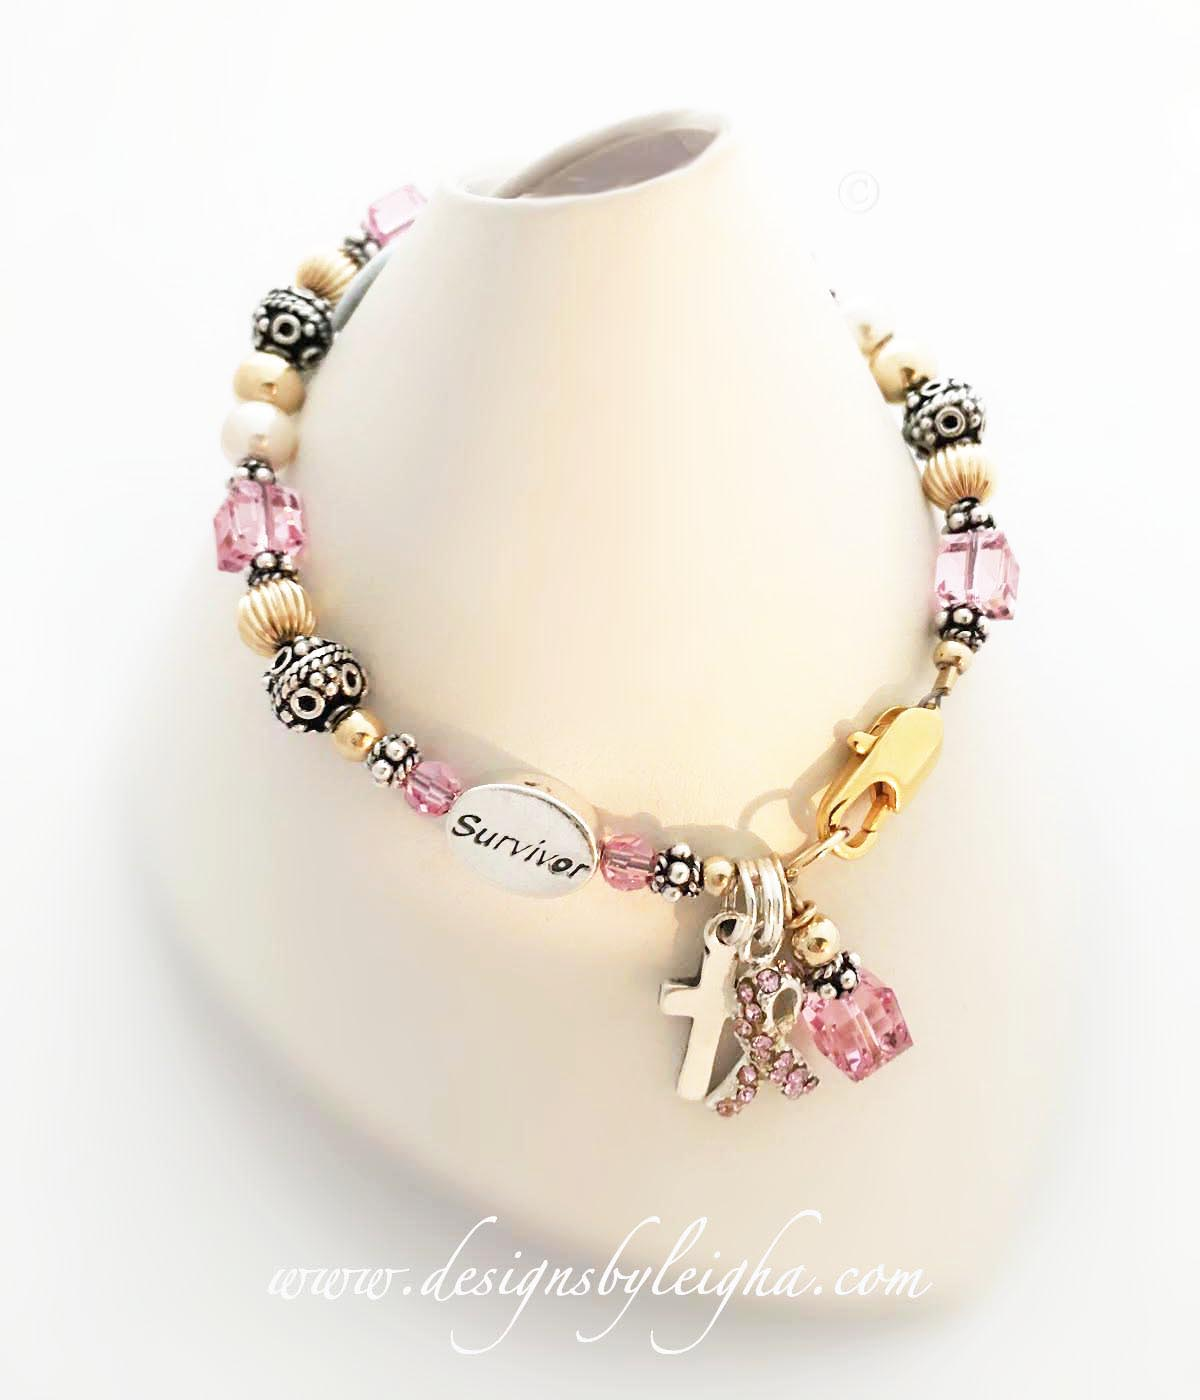 Breast Cancer Pink Ribbon Bracelet with a Pink Crystal Ribbon Charm, Crystal Dangle and an add-on Simple Cross Charm with a Survivor Bead.